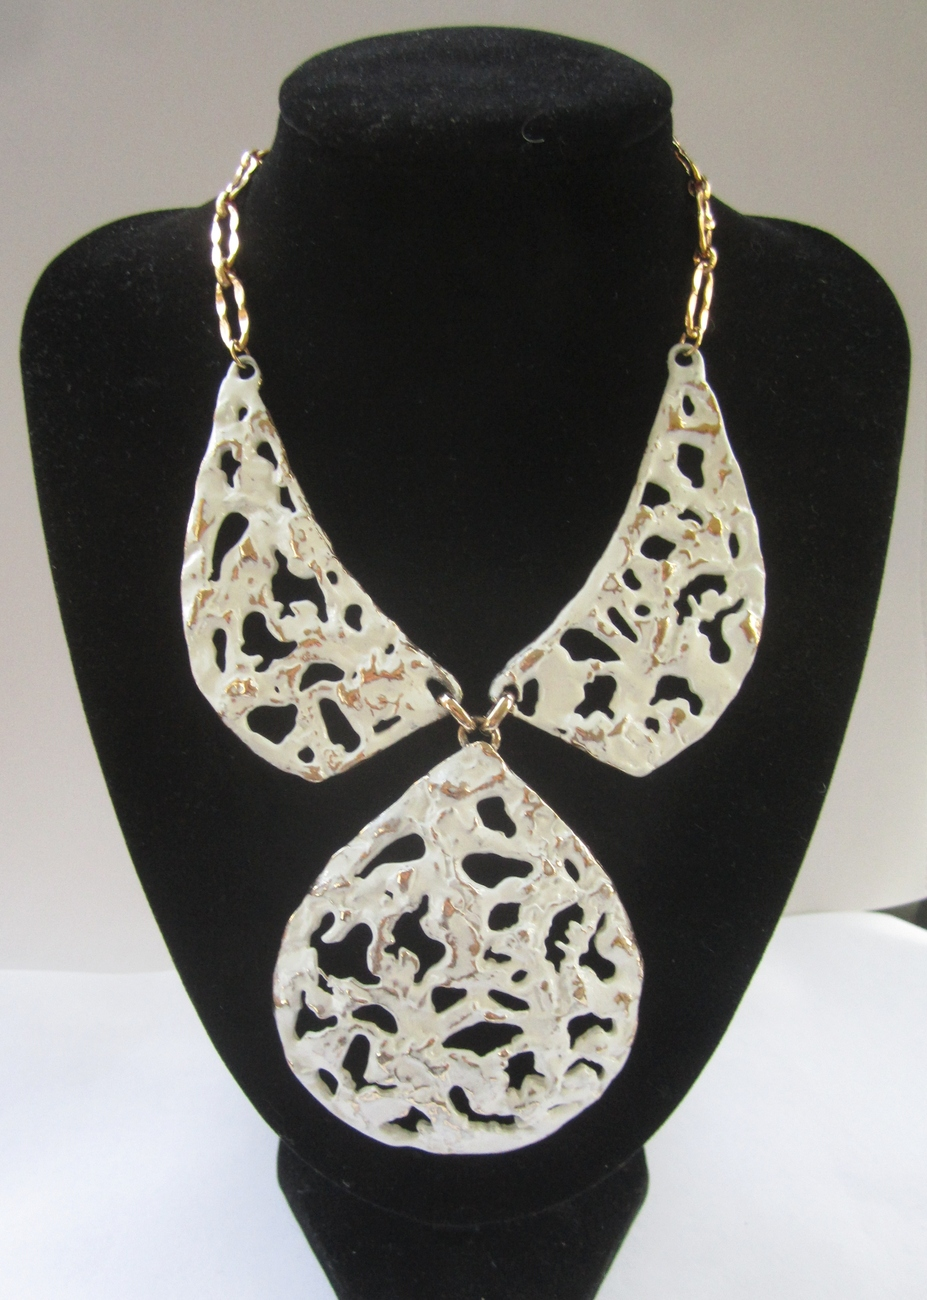 White Enamel Modernist Necklace, by Napier. c. 1970s